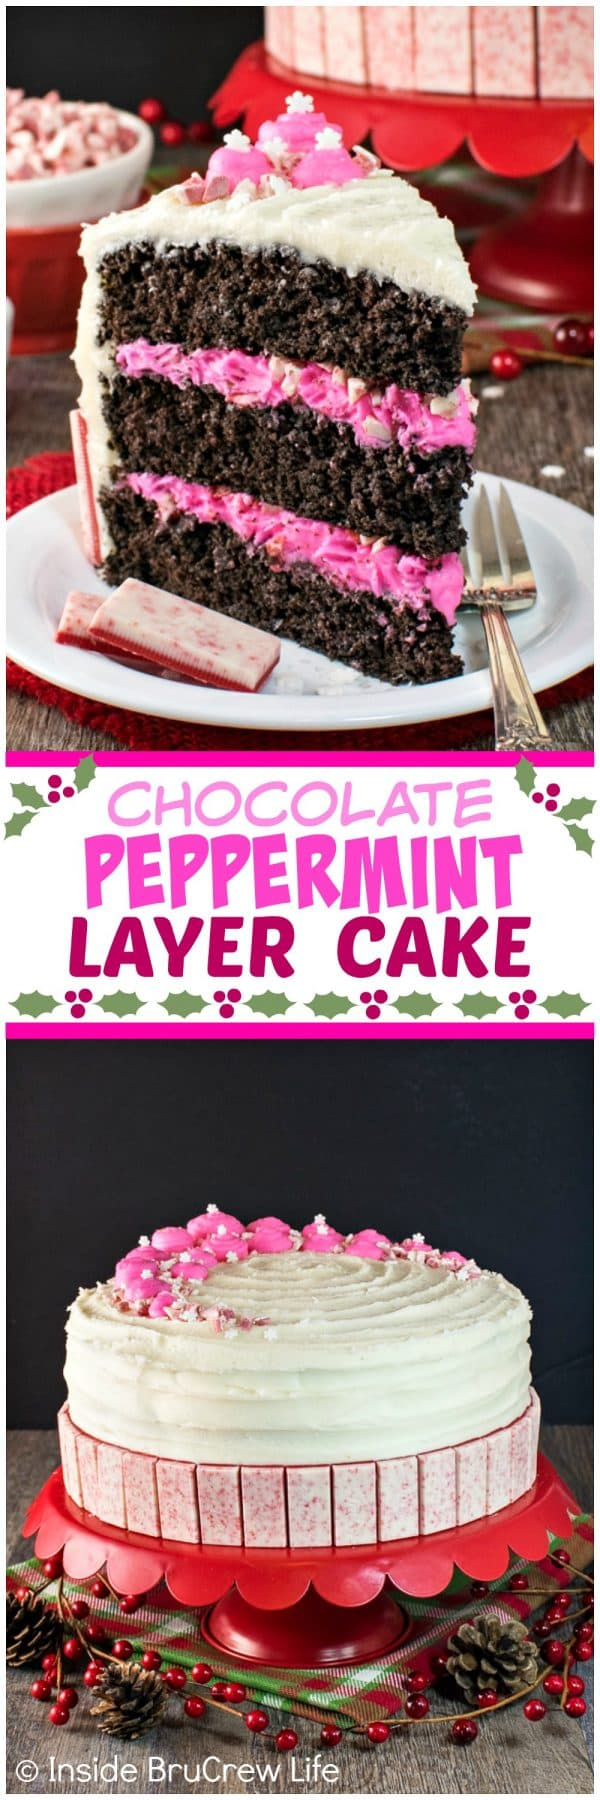 Chocolate Peppermint Layer Cake - candies, peppermint frosting, & sprinkles add a fun flair to this homemade cake. Great recipe for holiday parties.